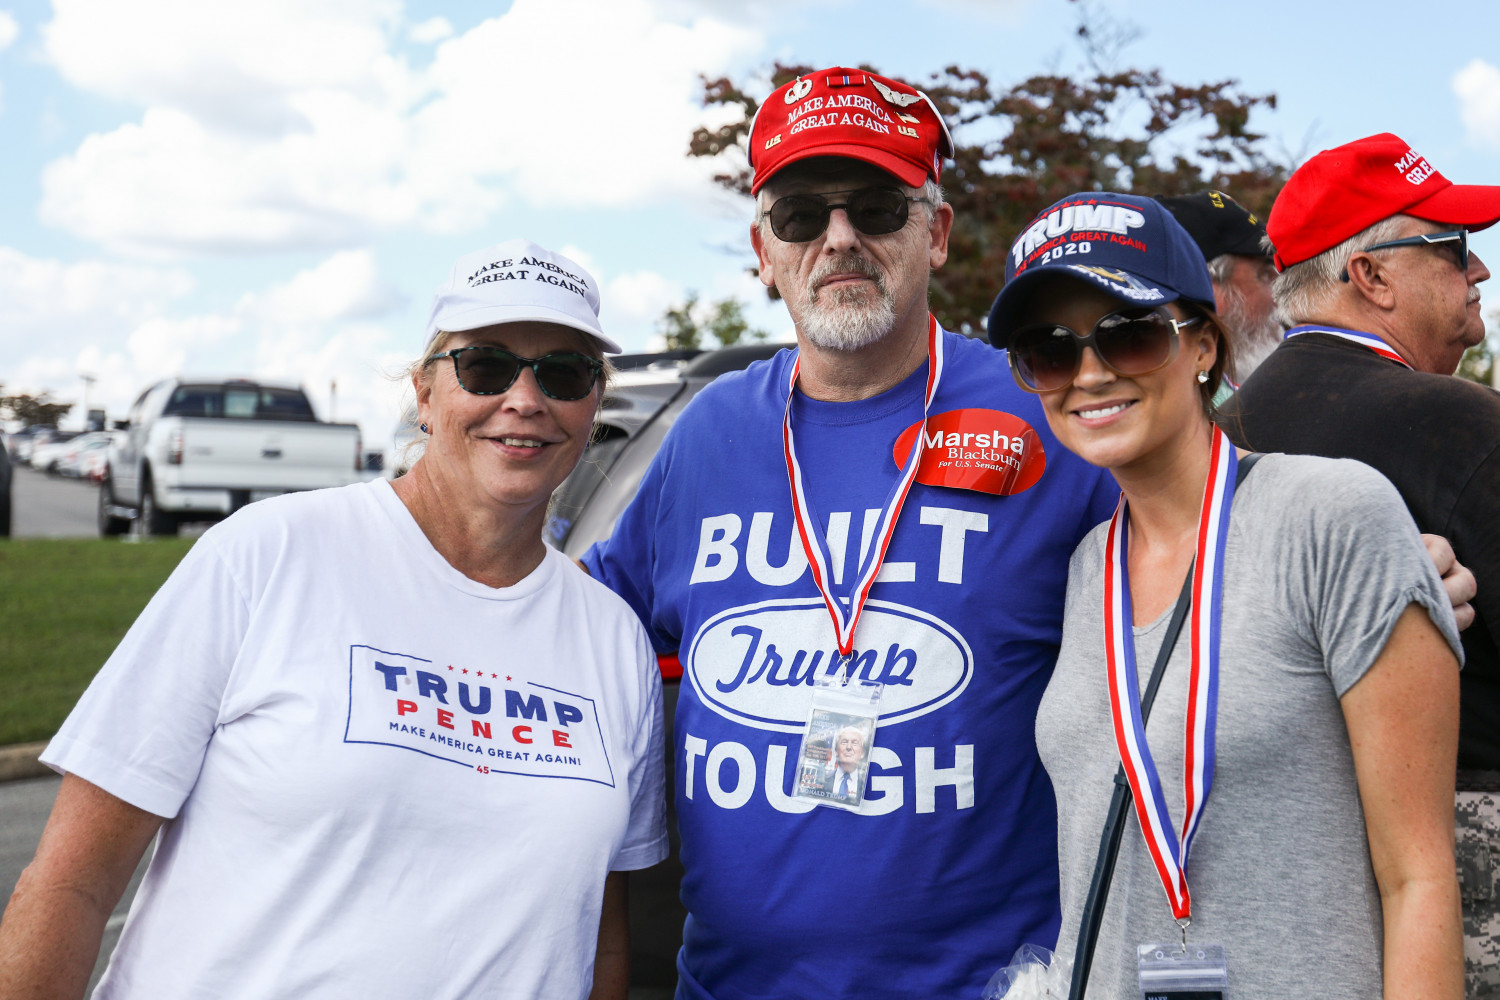 Rita Eveland (L) and friends before the Make America Great Again rally